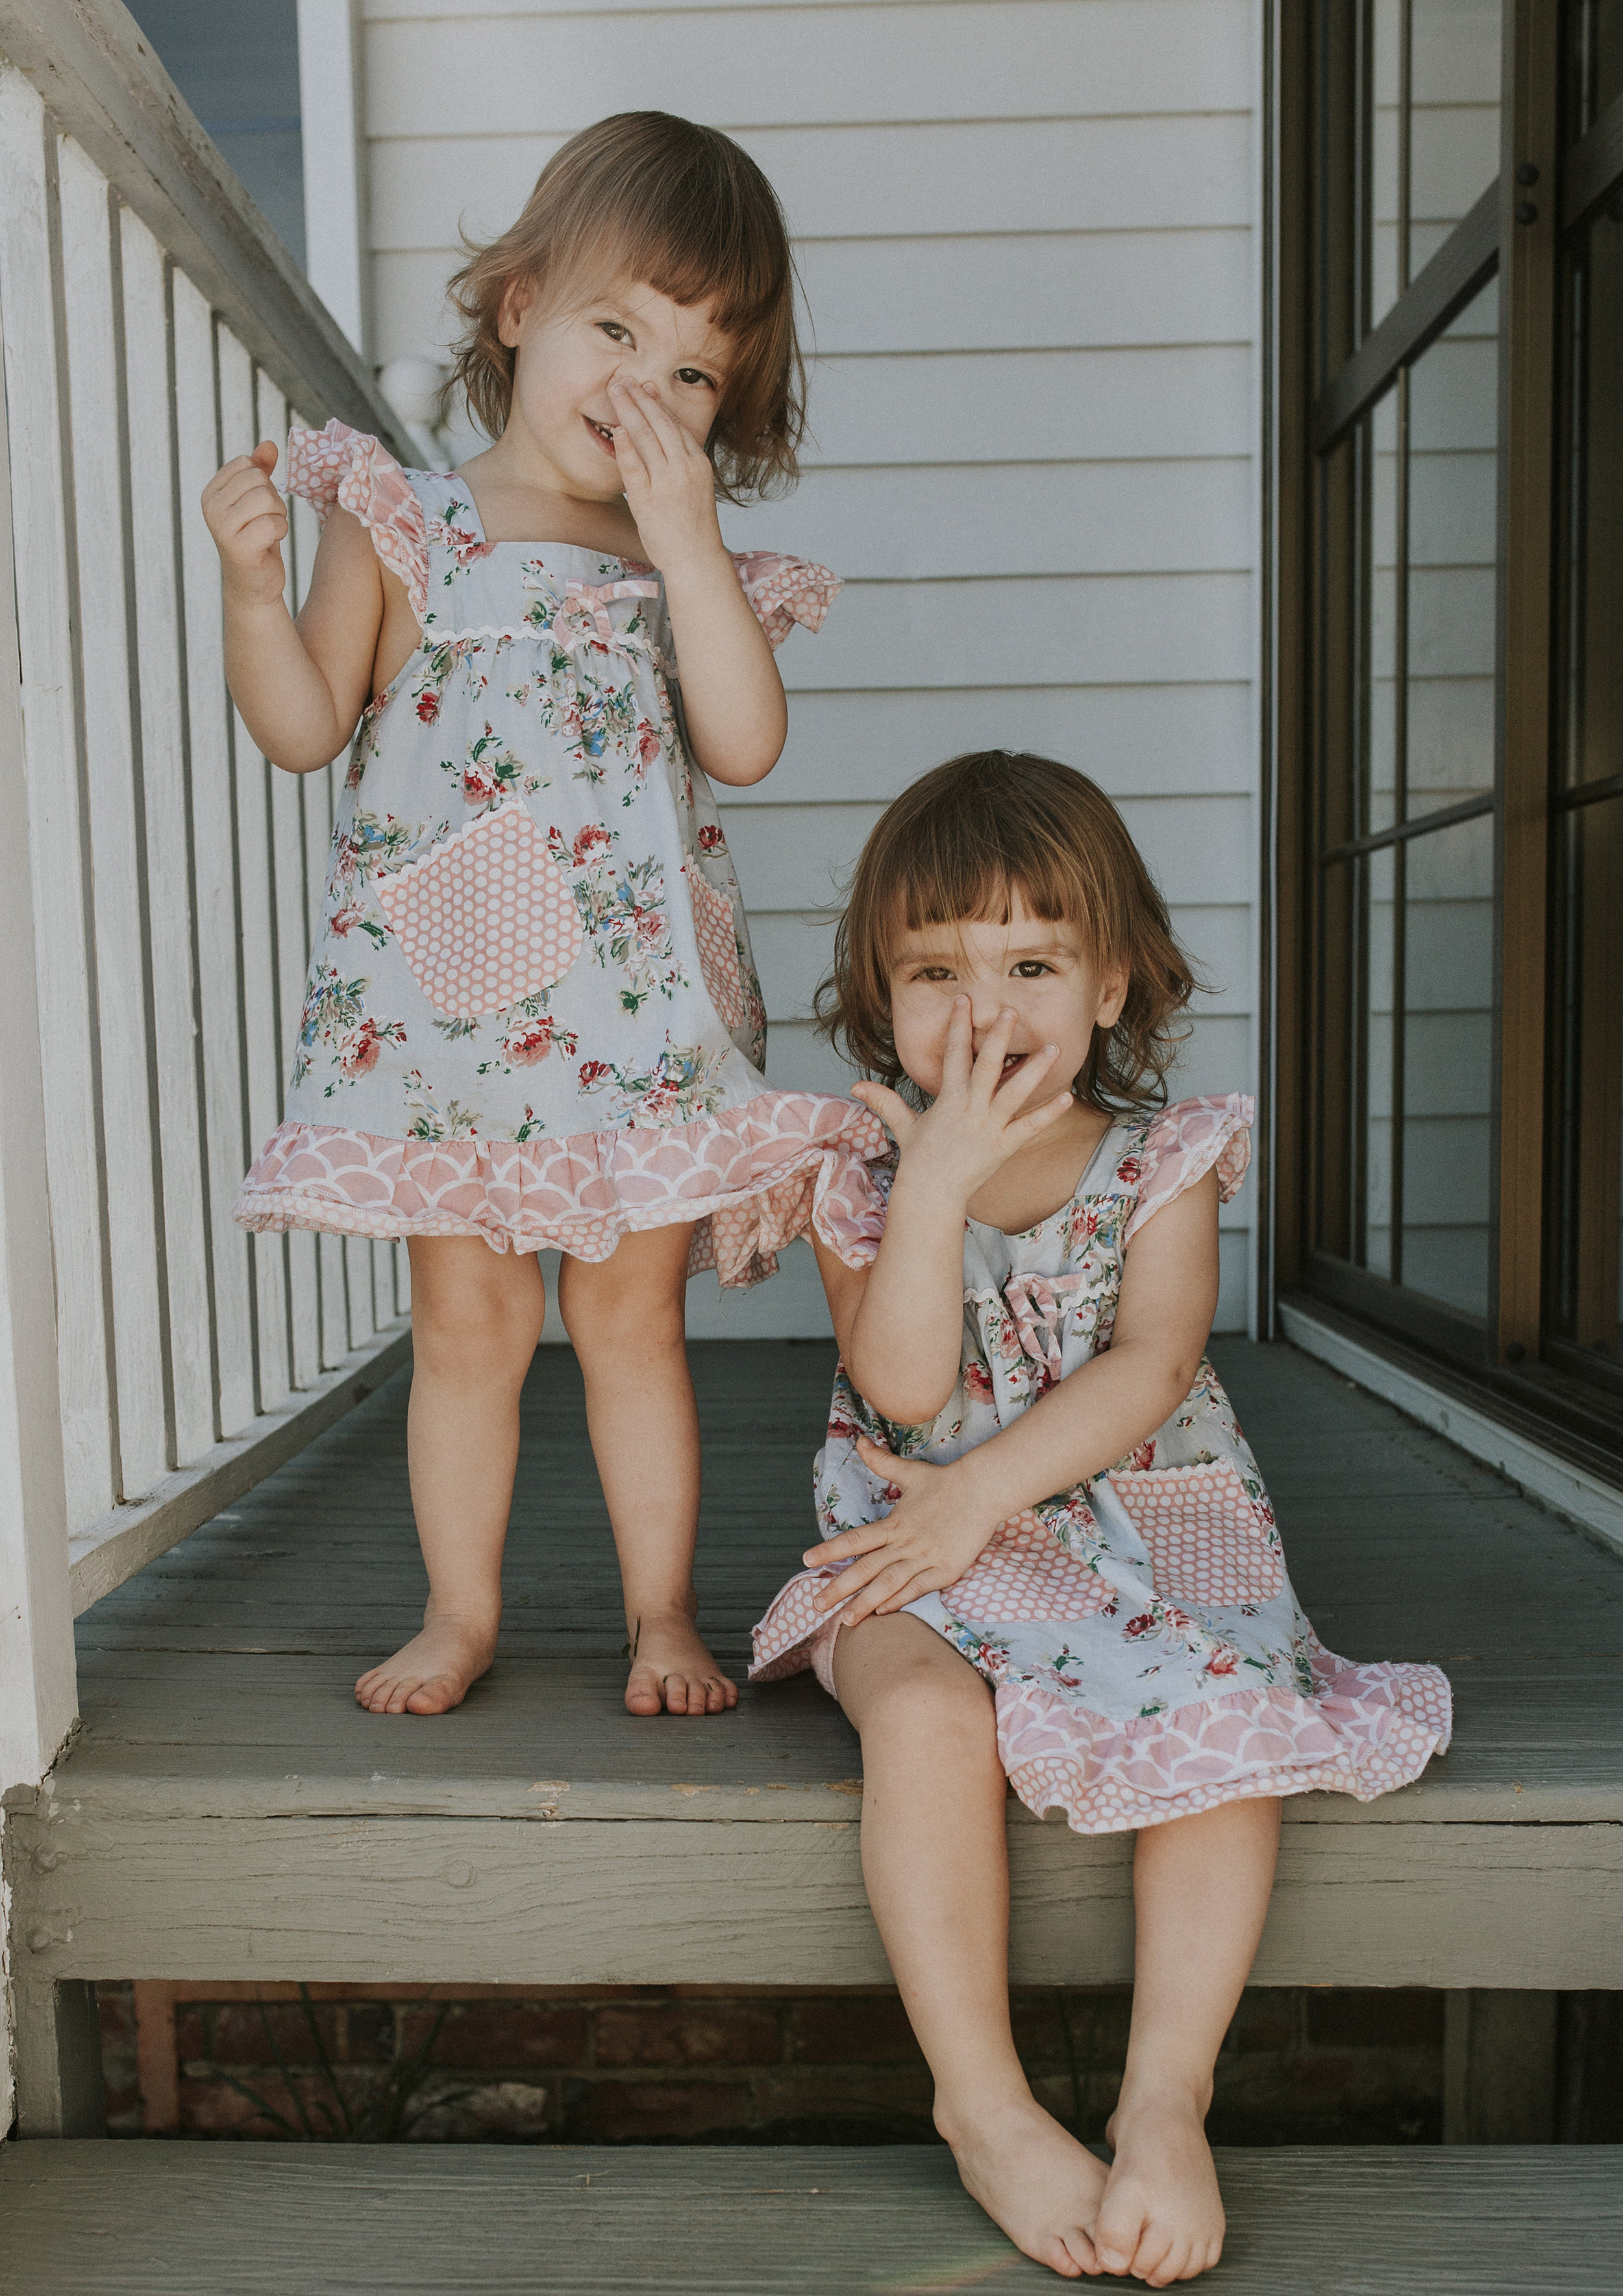 Toddler's touching their noses